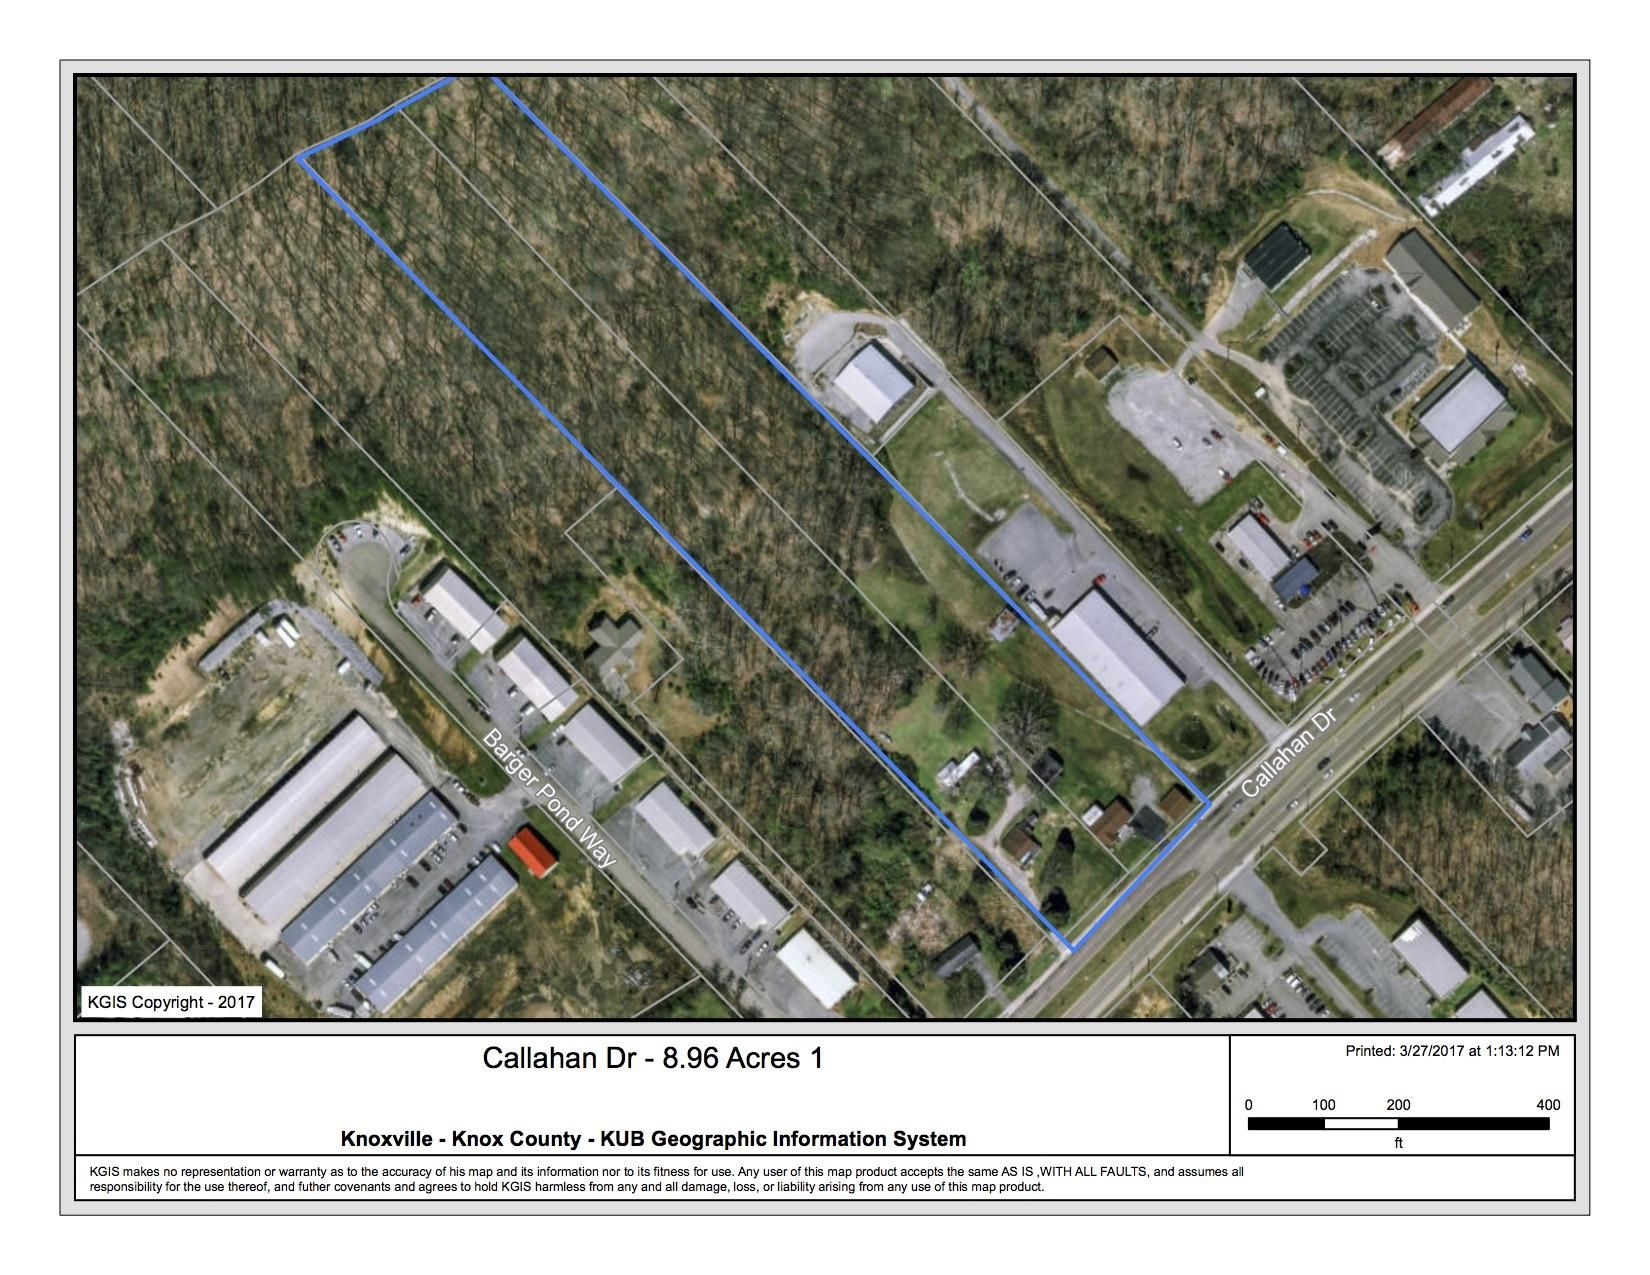 Callahan Dr - 8.96 Acres Outlined 1